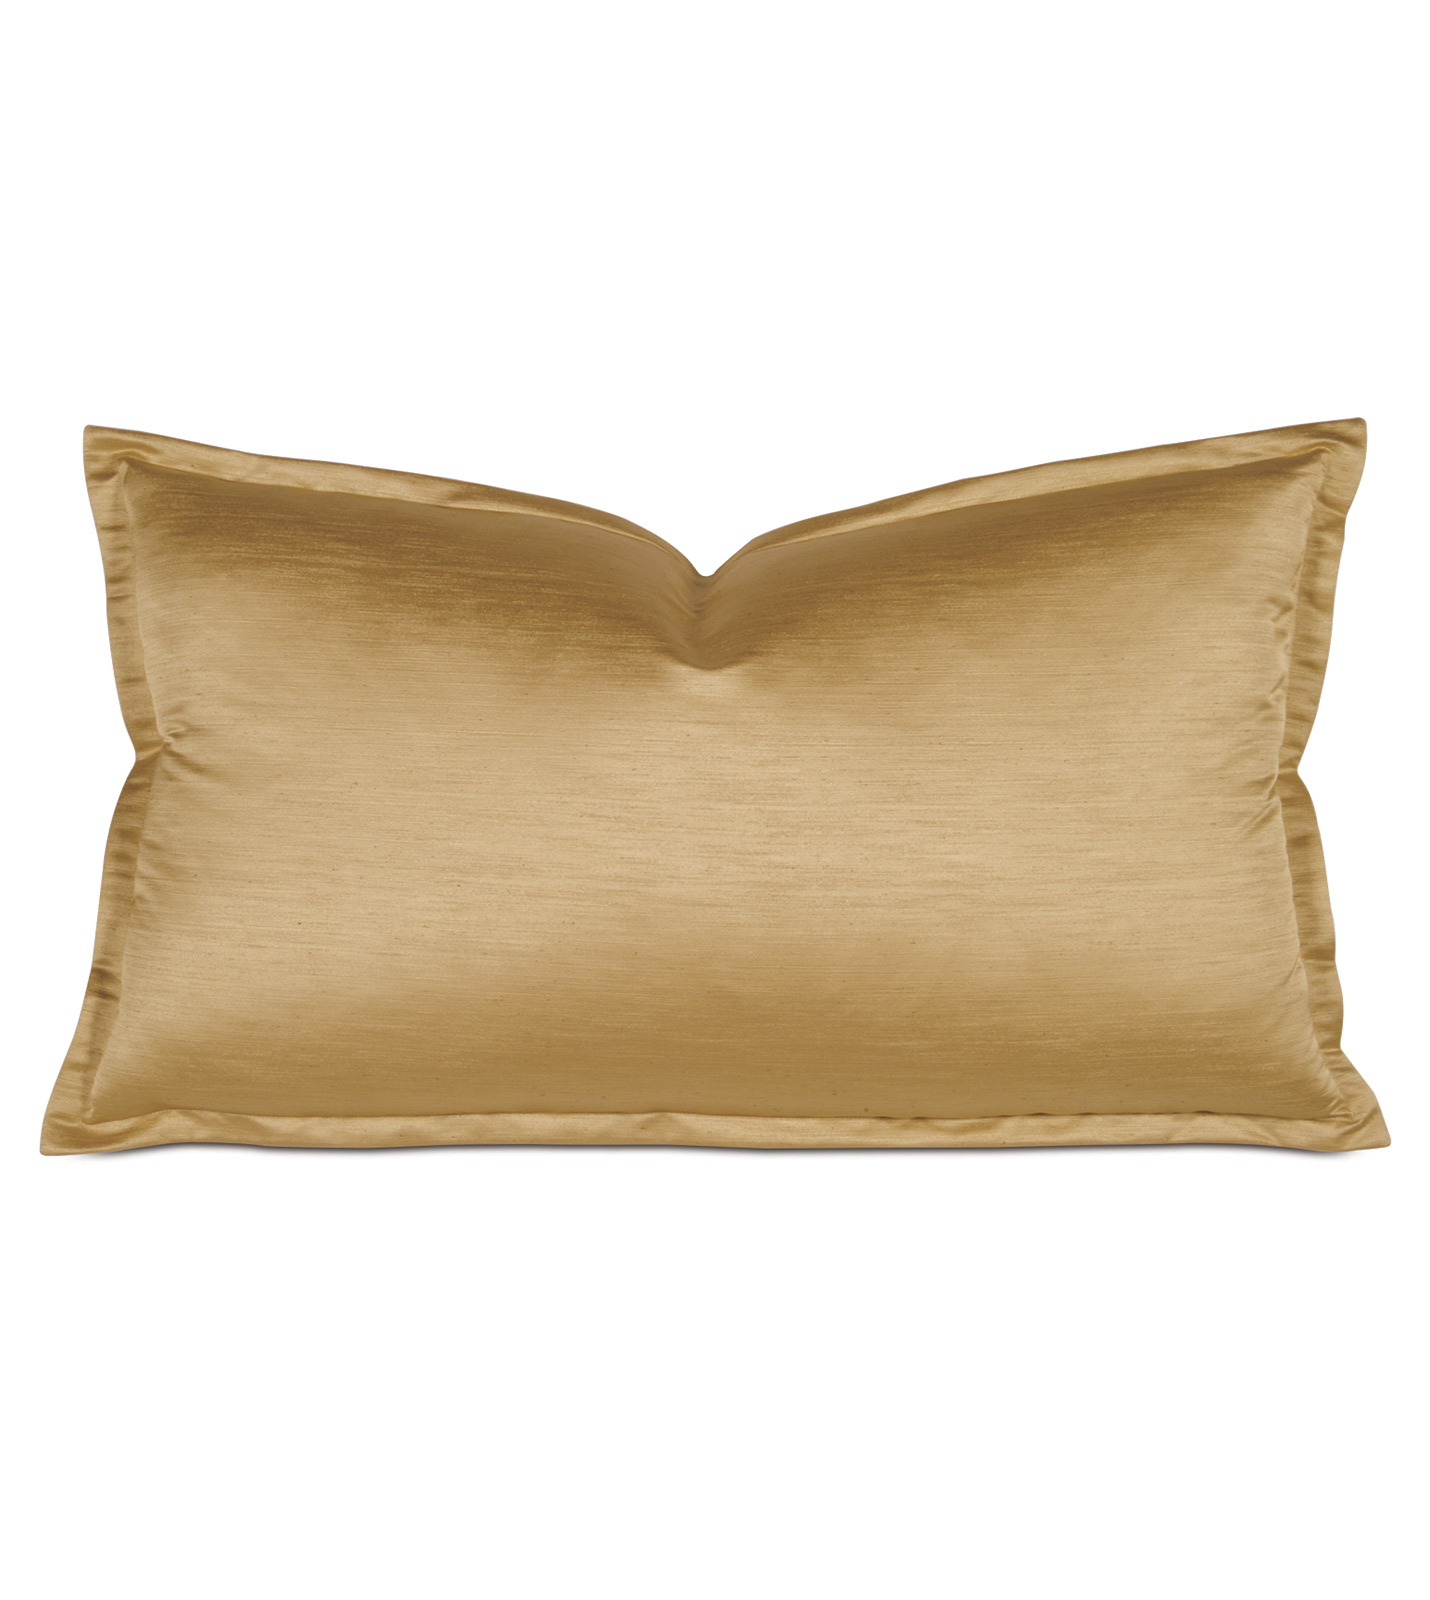 Barclay Butera Luxury Bedding by Eastern Accents - Luxe King Sham